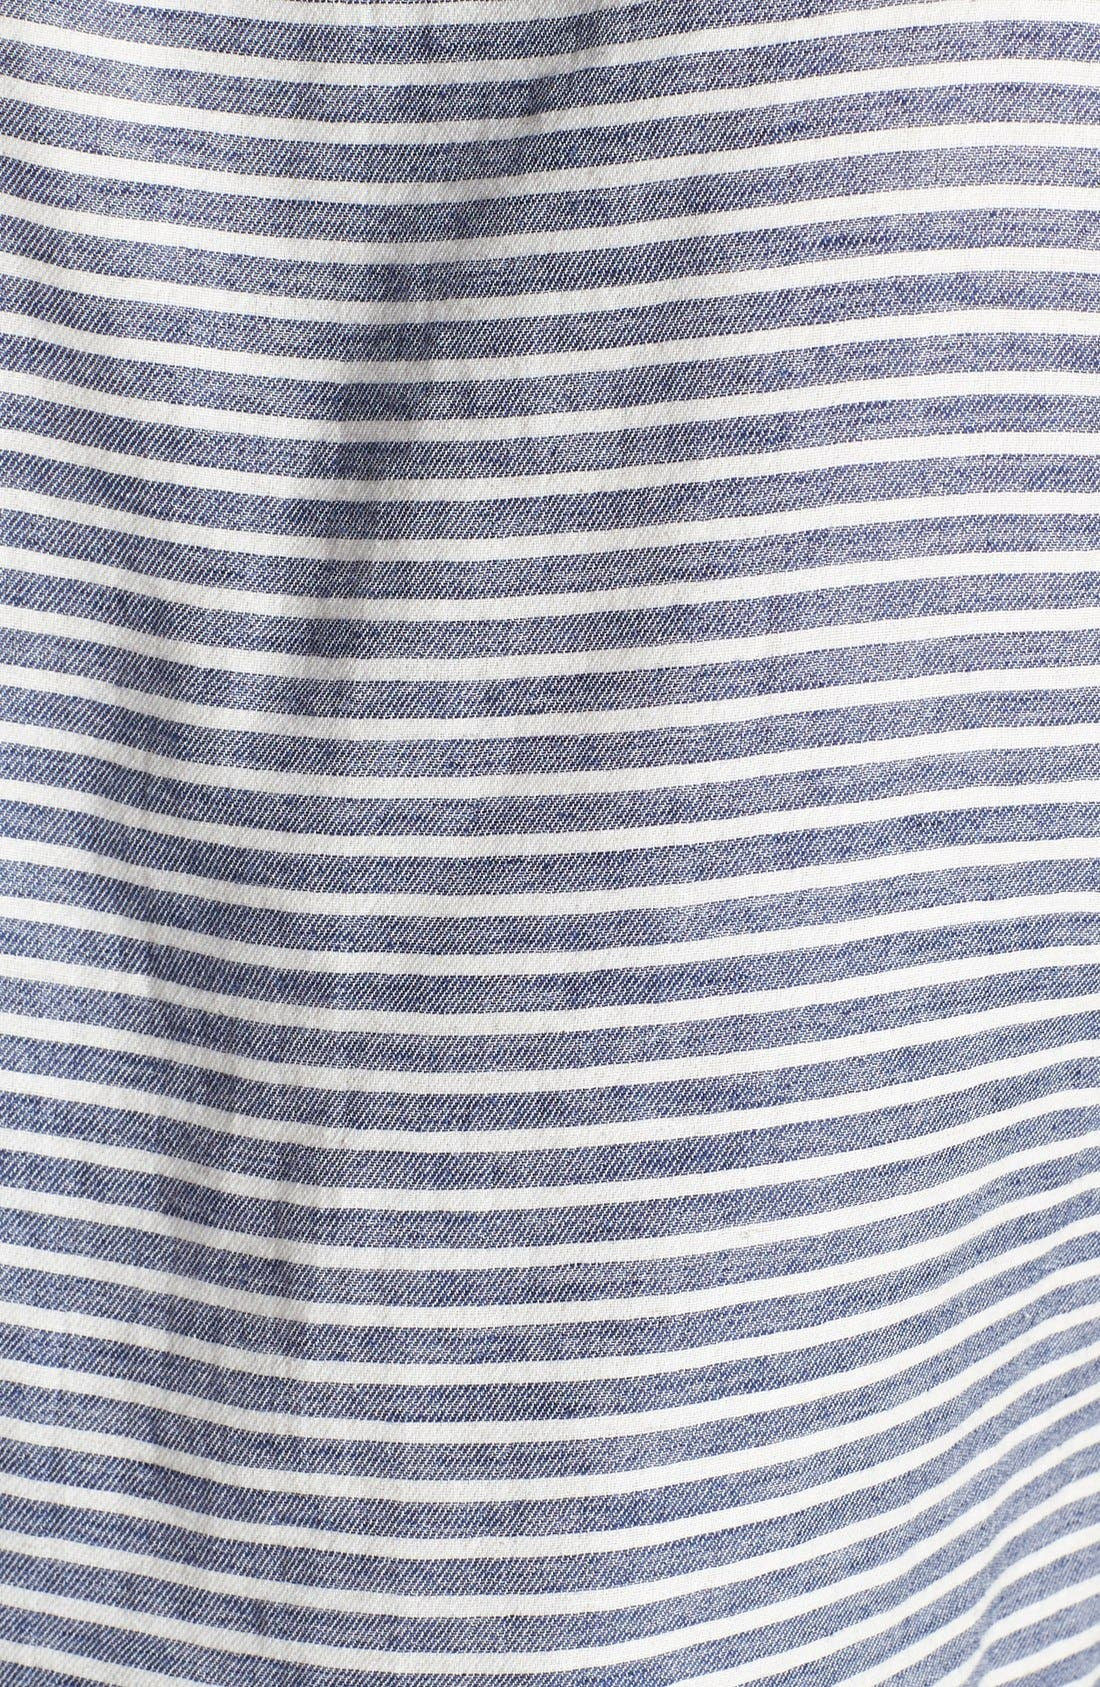 Alternate Image 3  - Citizens of Humanity 'Premium Vintage - Odette' Stripe Cotton Blend Tee